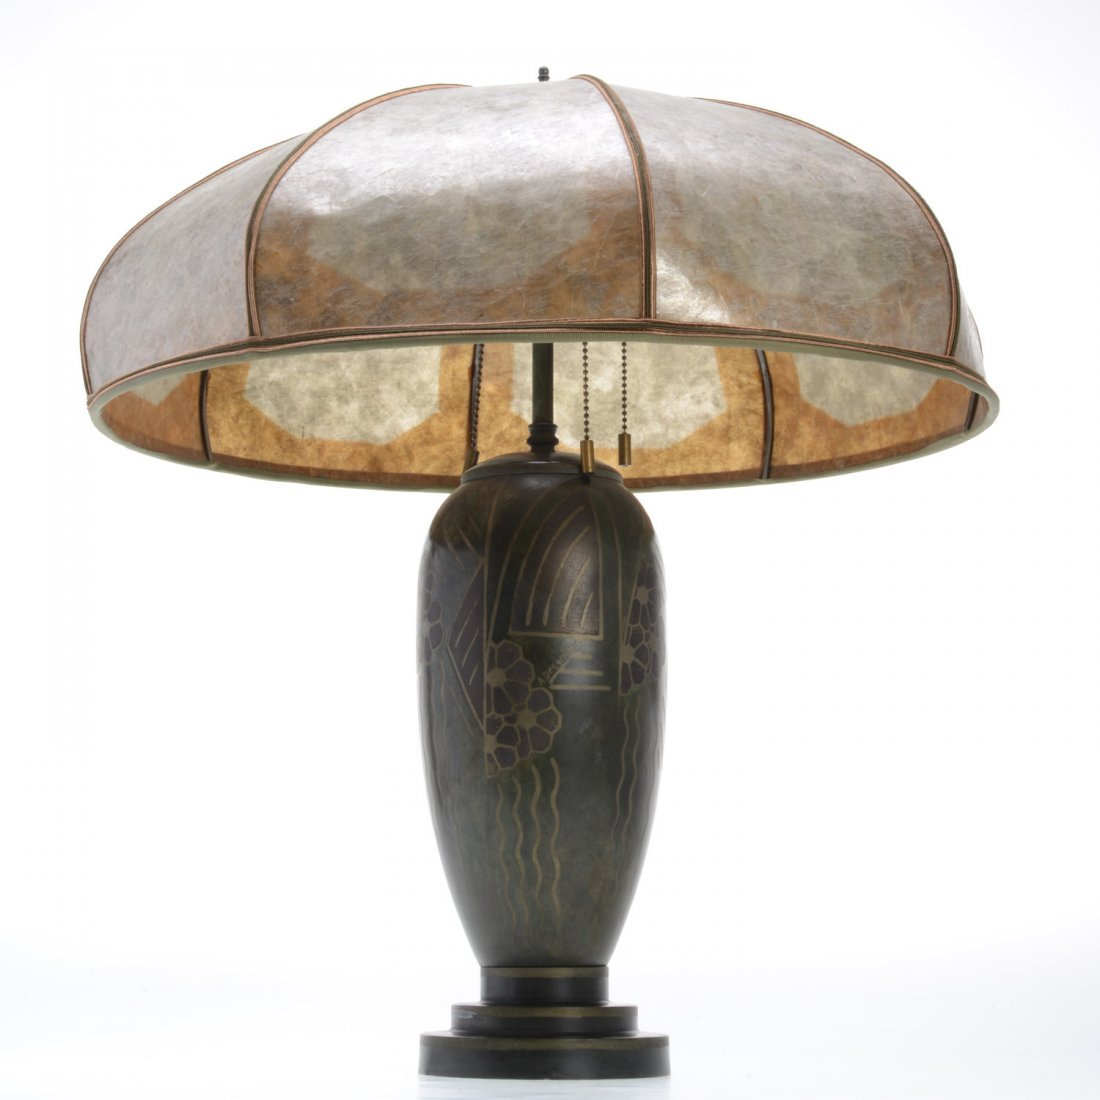 Art Deco patinated table lamp by A. Desgranges